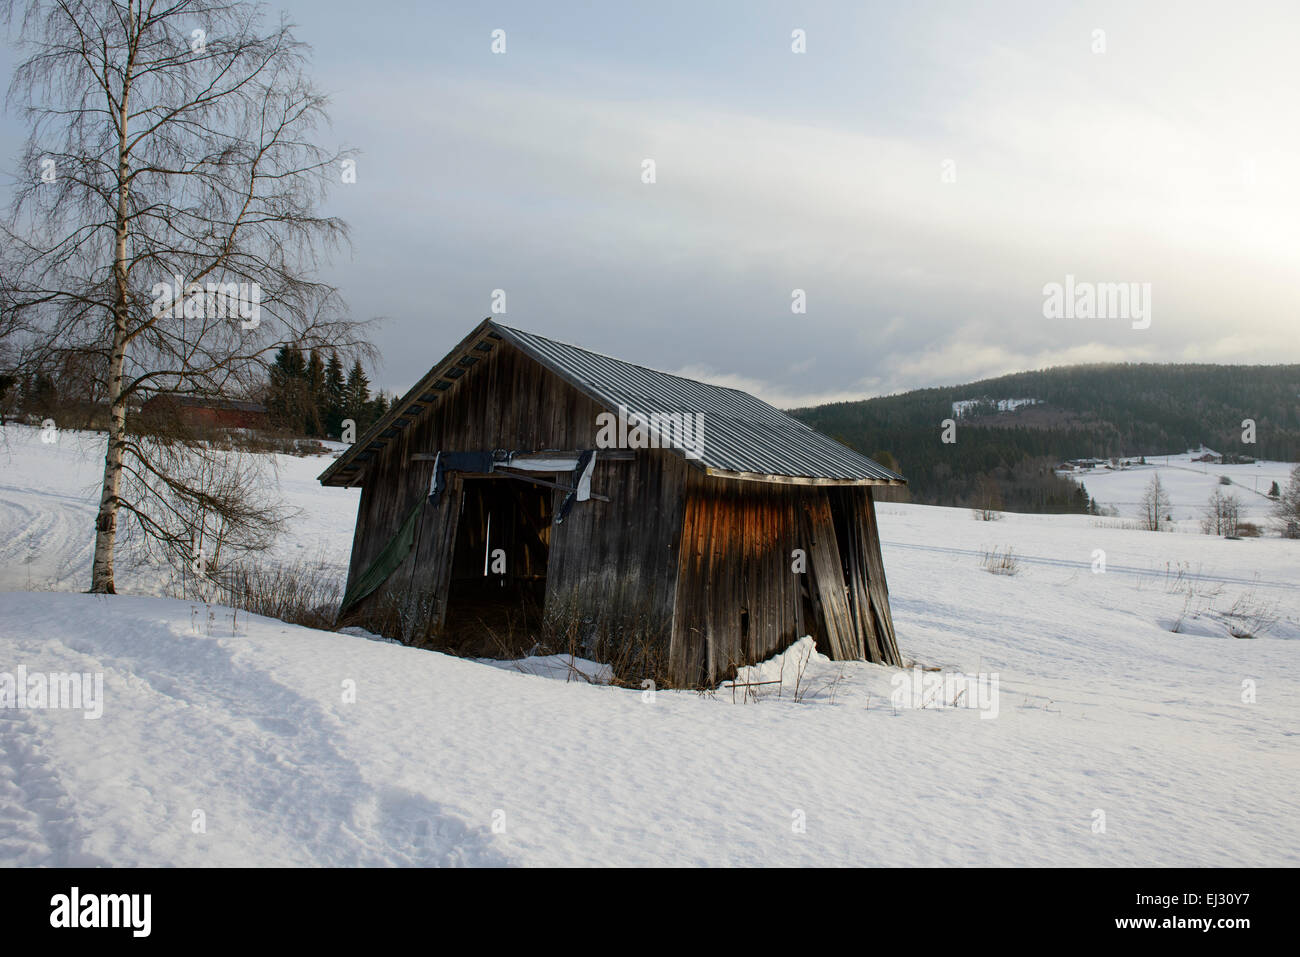 Old wooden barn in North Sweden farmland. - Stock Image